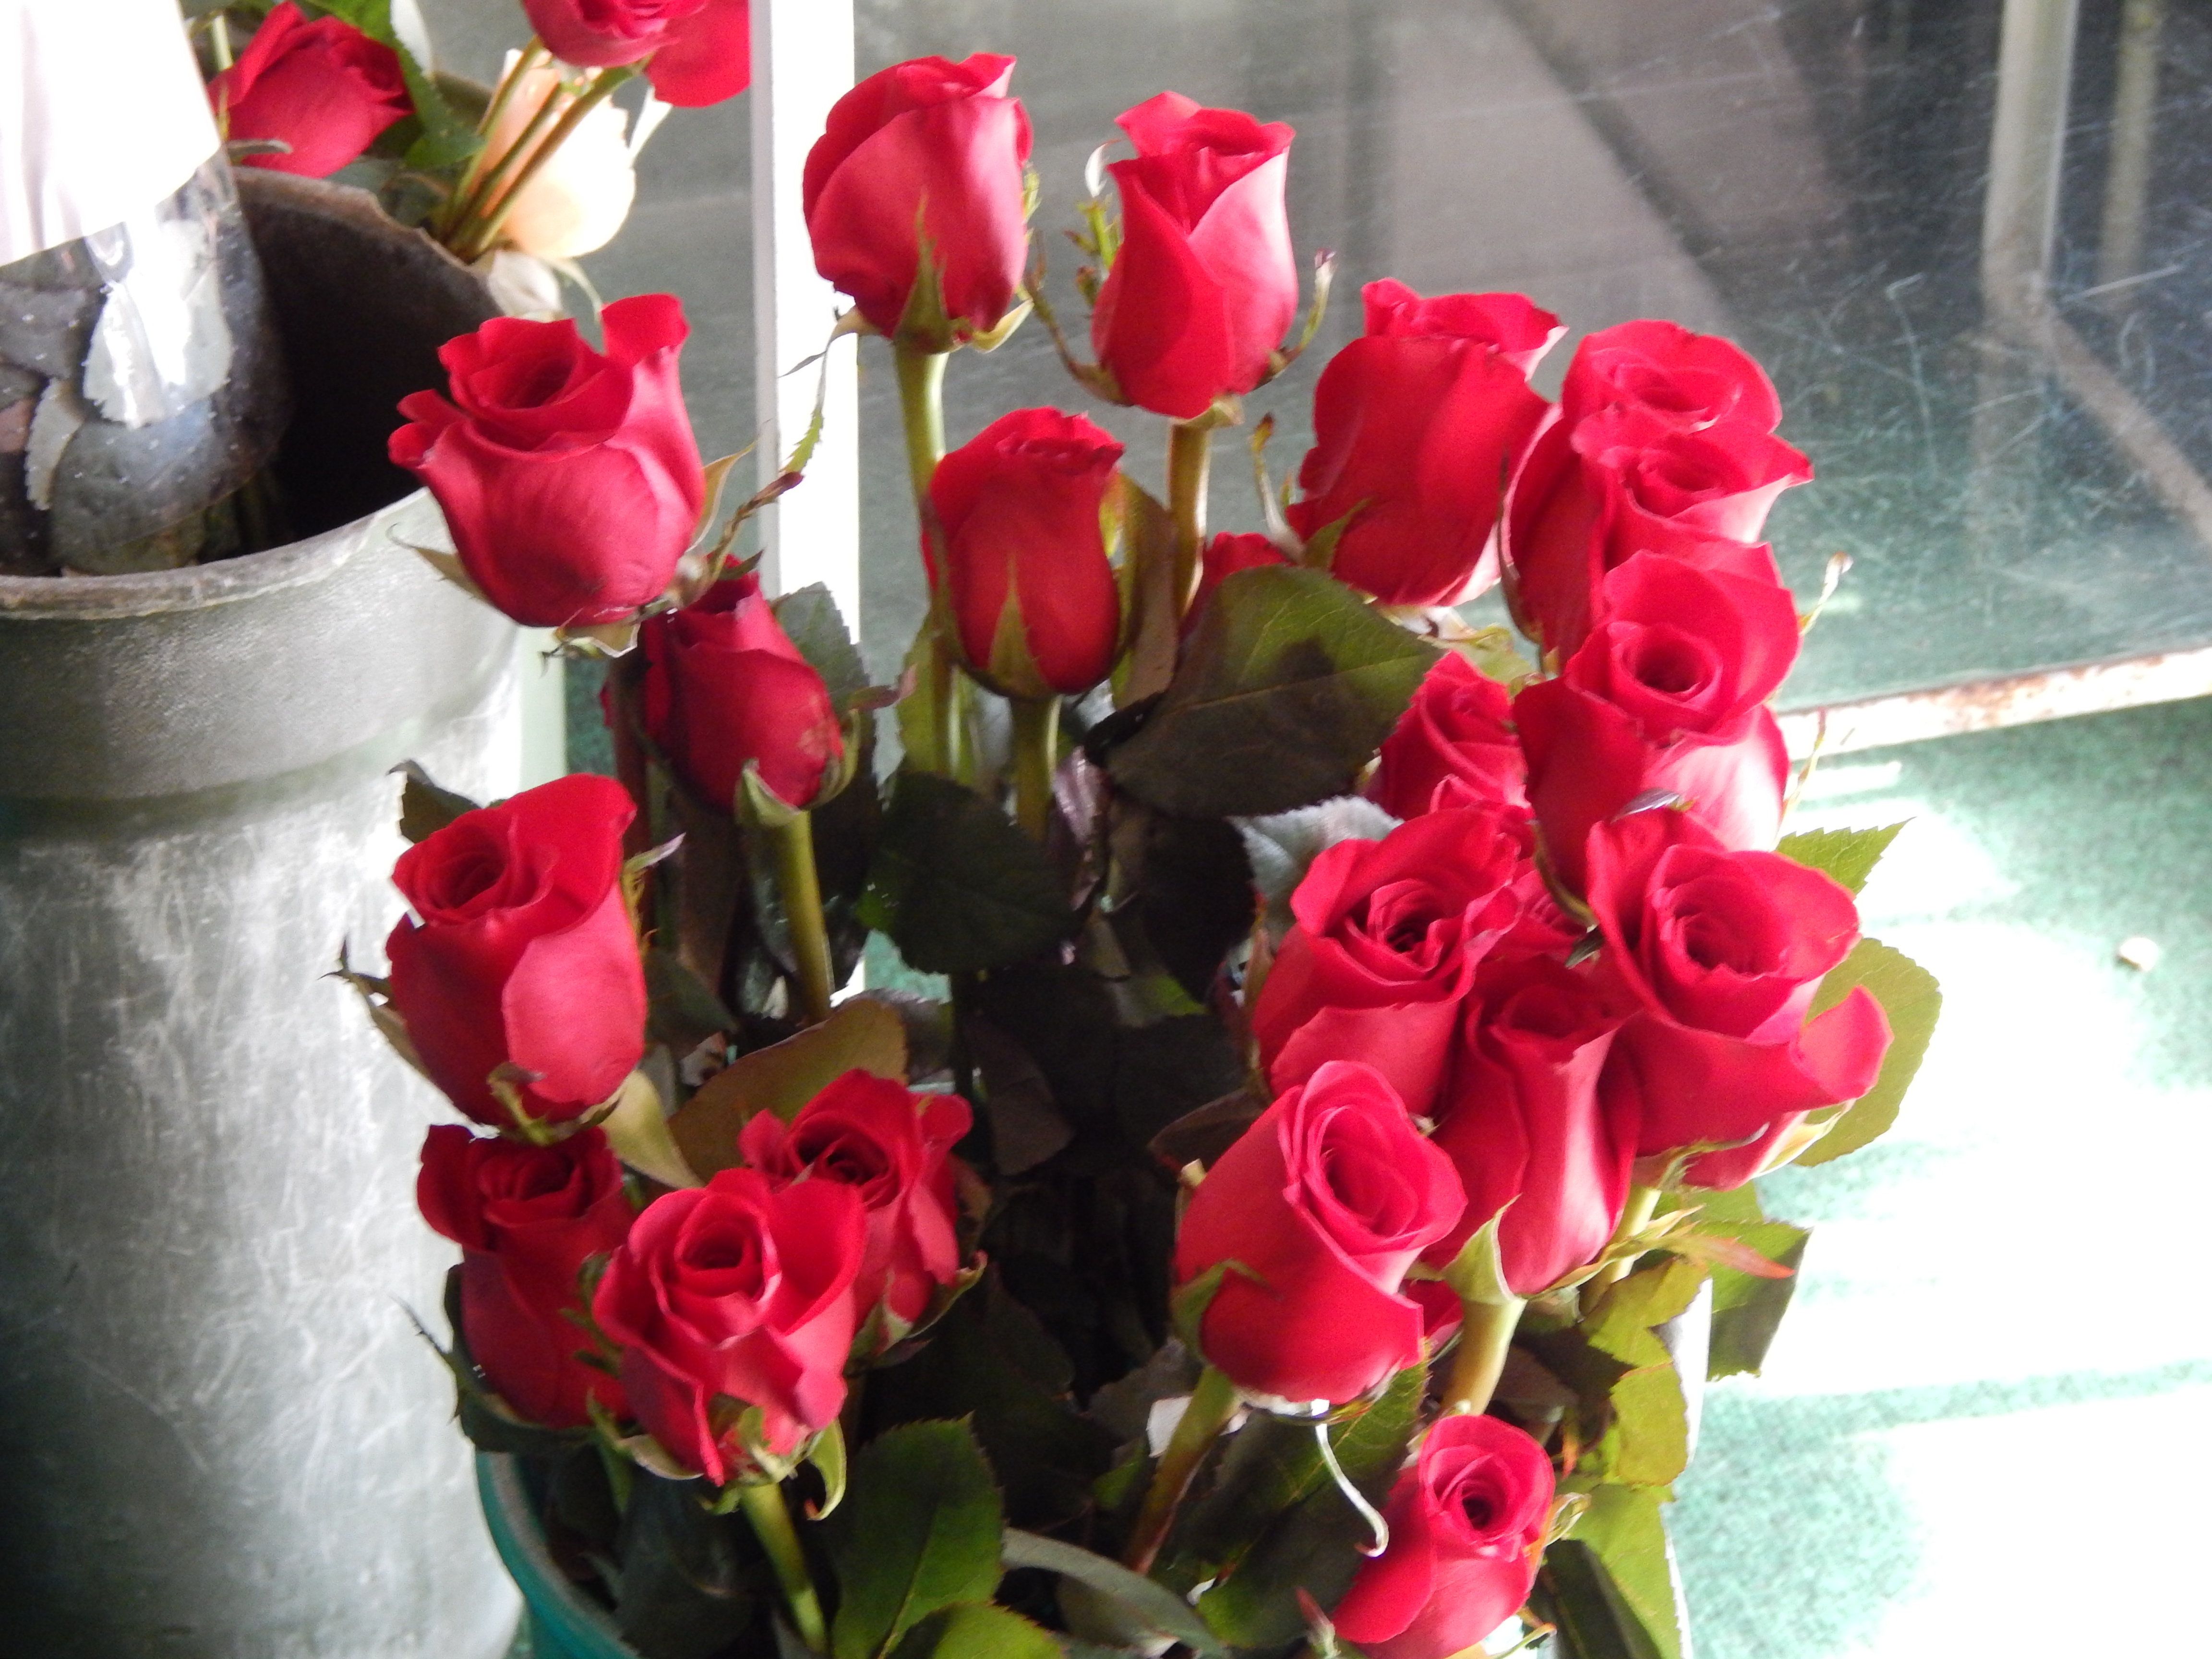 Red roses and flowers for st valentines day colonial florist rose are red a symbol of love this saturday is st valentines day and colonial florist is ready they have ordered thousands of roses for the holiday buycottarizona